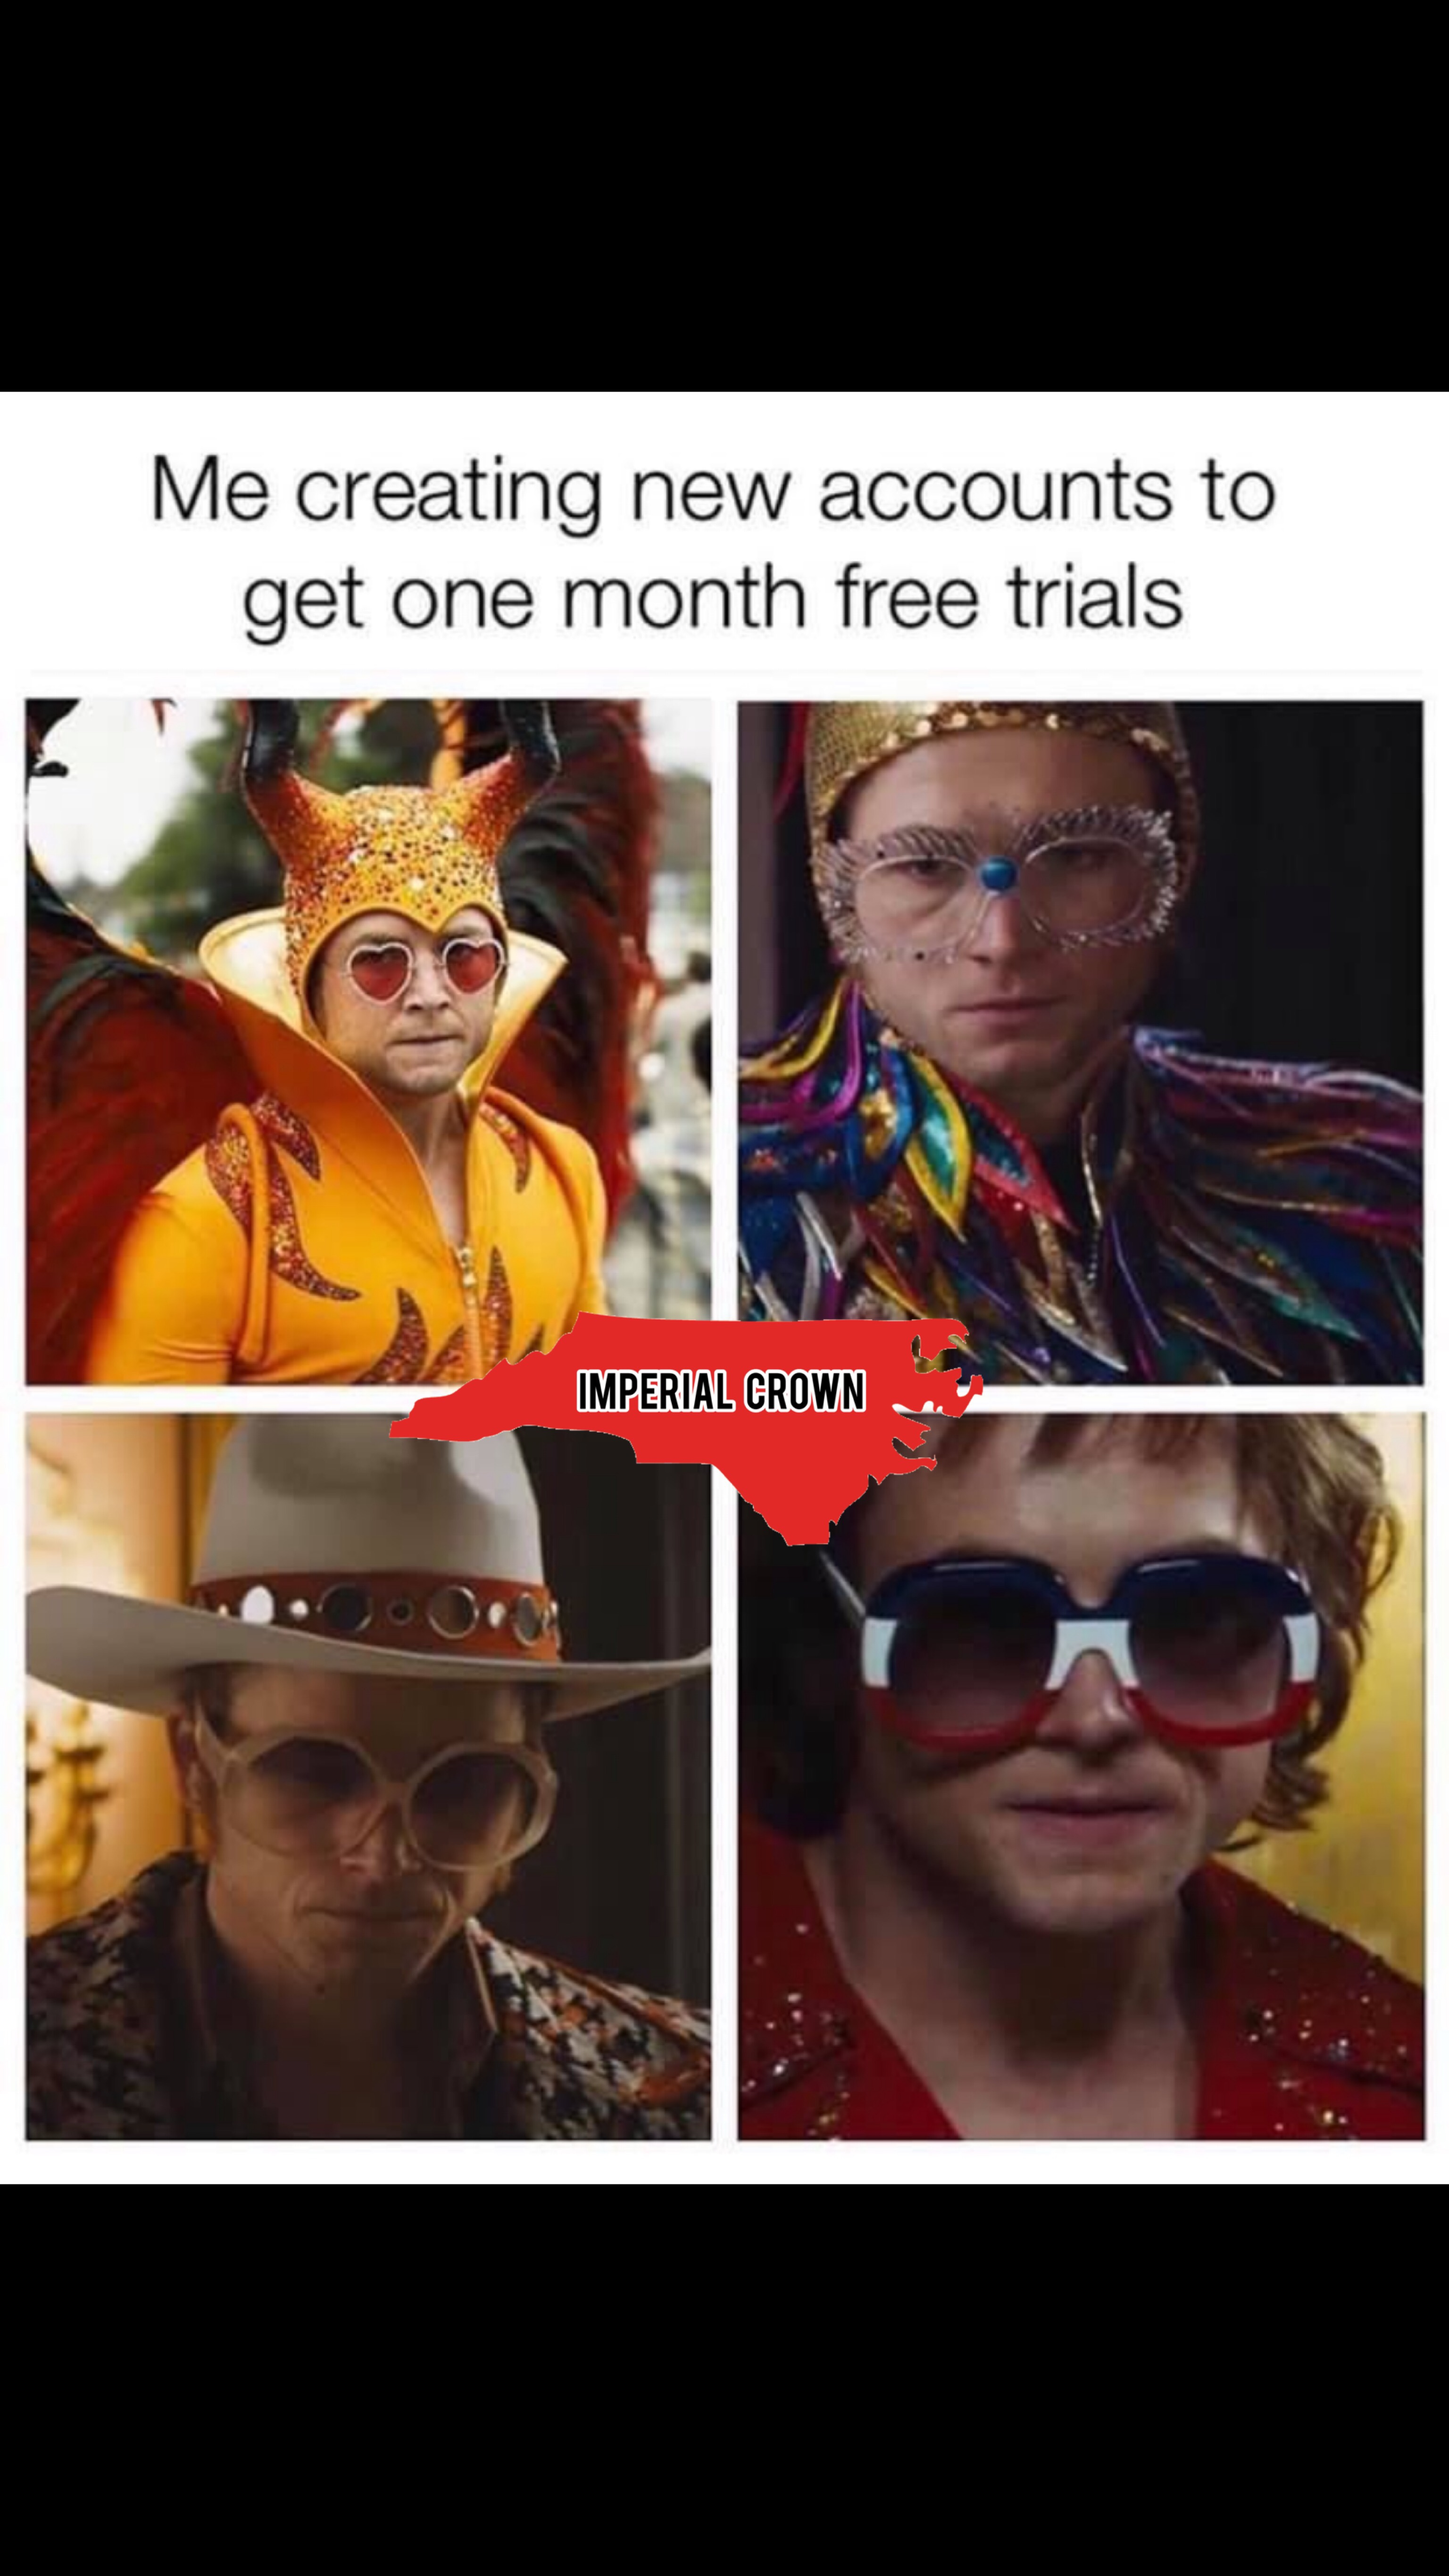 Me creating new accounts to get one month free trial